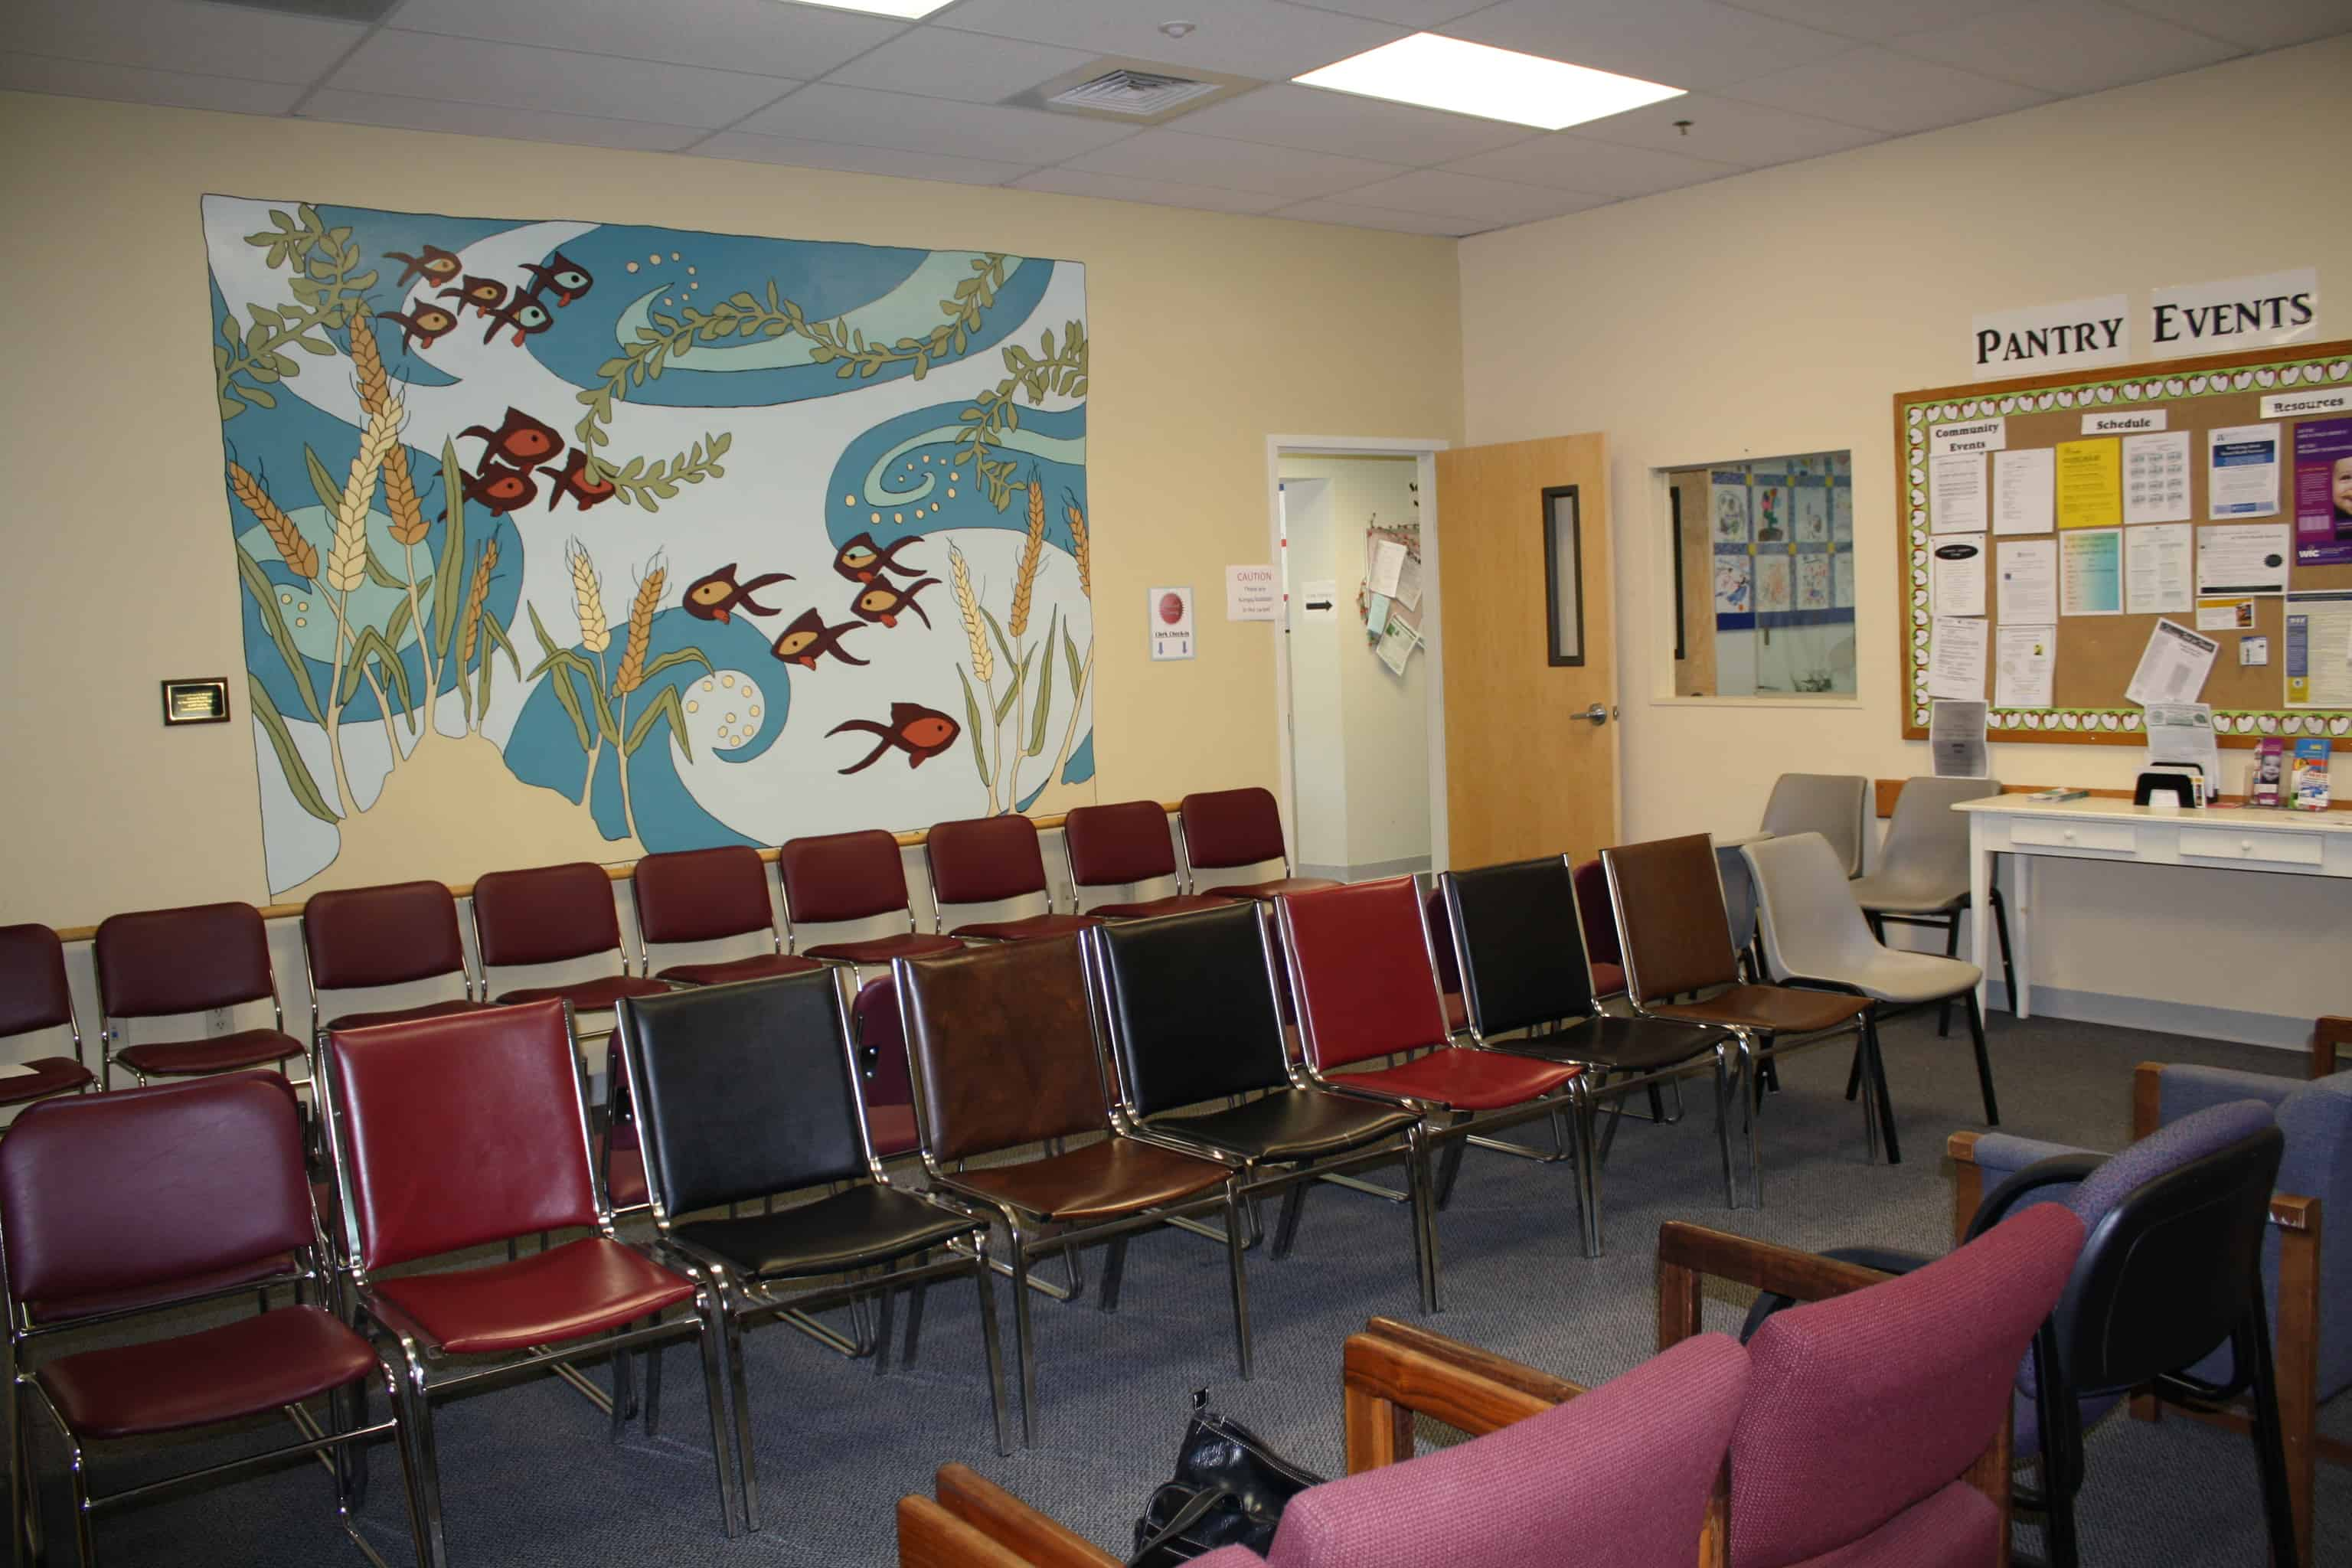 You will then have a seat in our waiting room. When your number is called, you will meet with a volunteer steward.